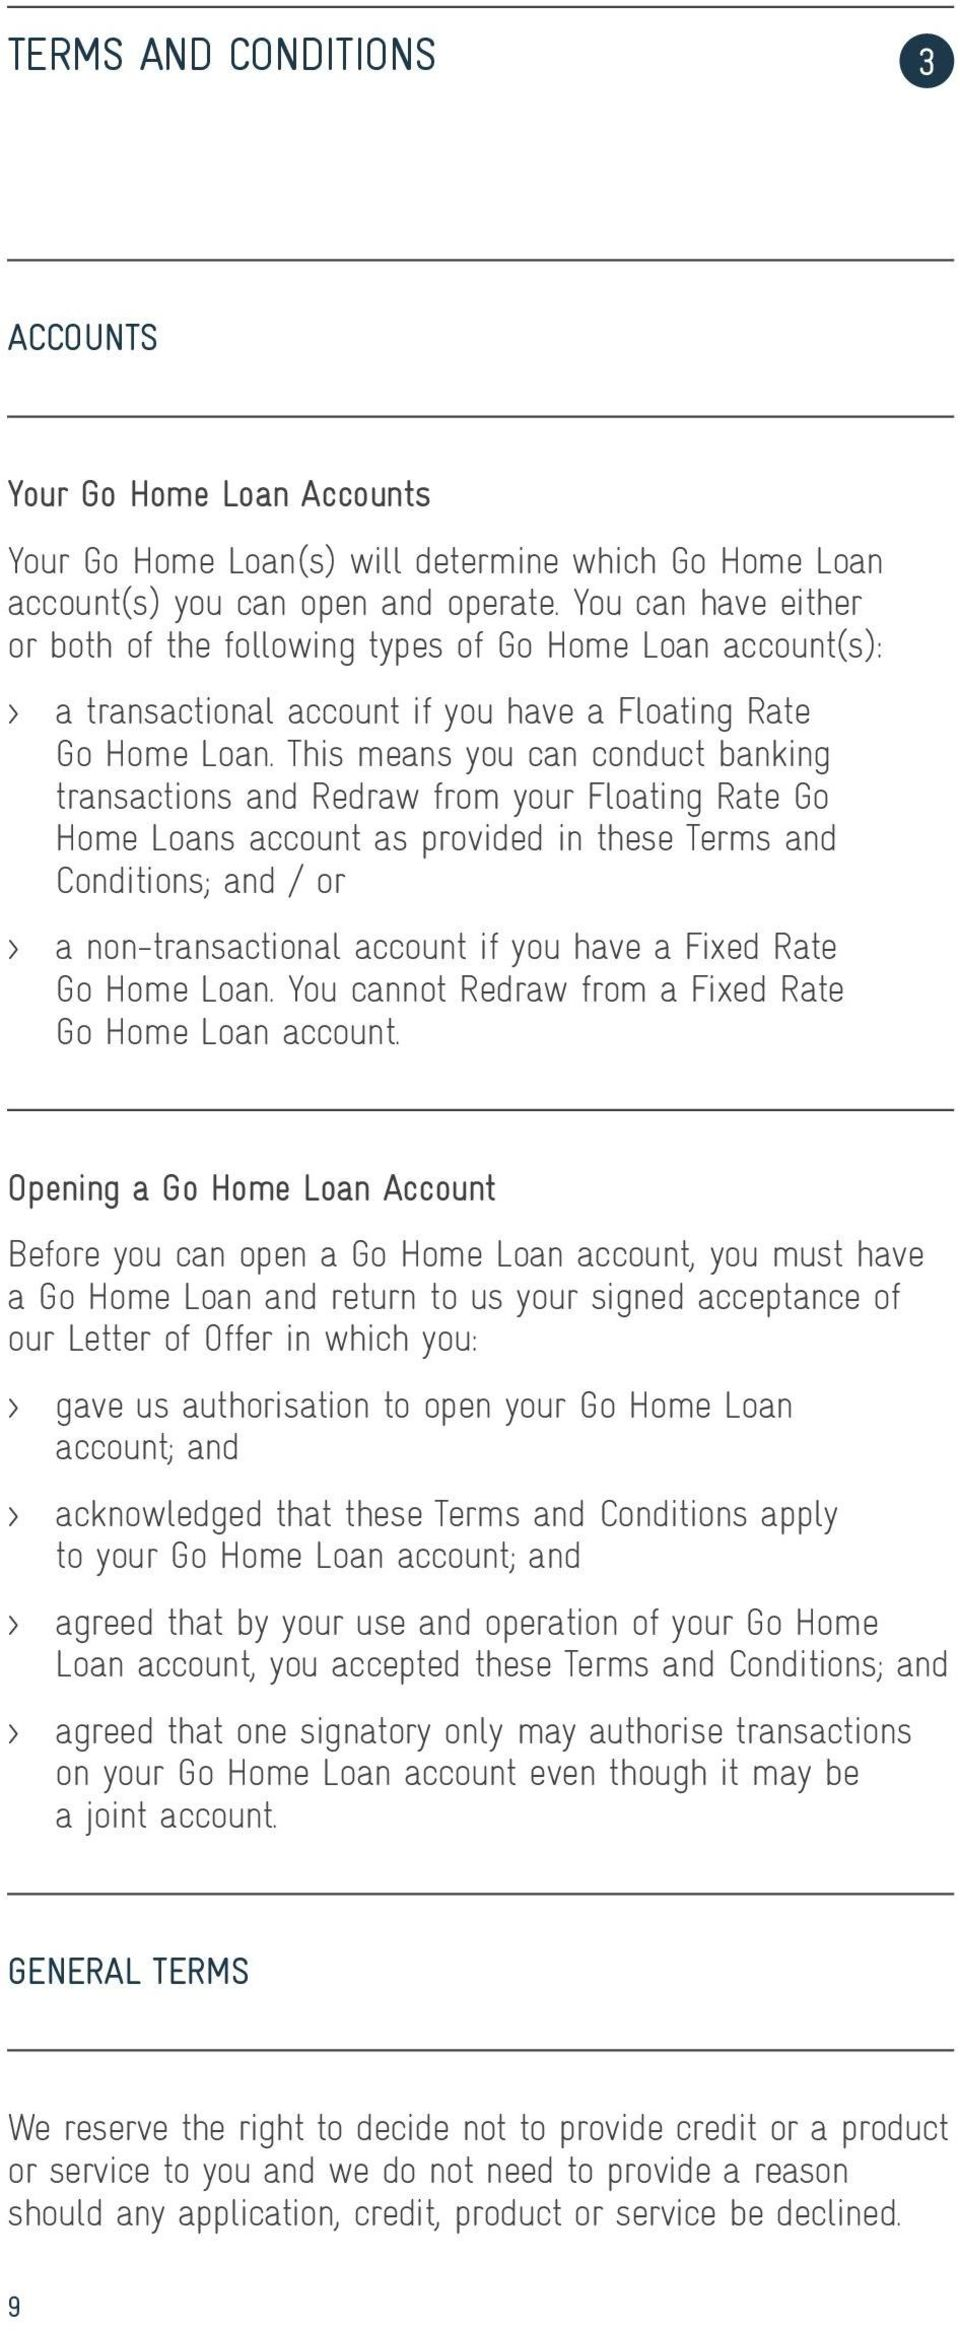 This means you can conduct banking transactions and Redraw from your Floating Rate Go Home Loans account as provided in these Terms and Conditions; and / or > a non-transactional account if you have